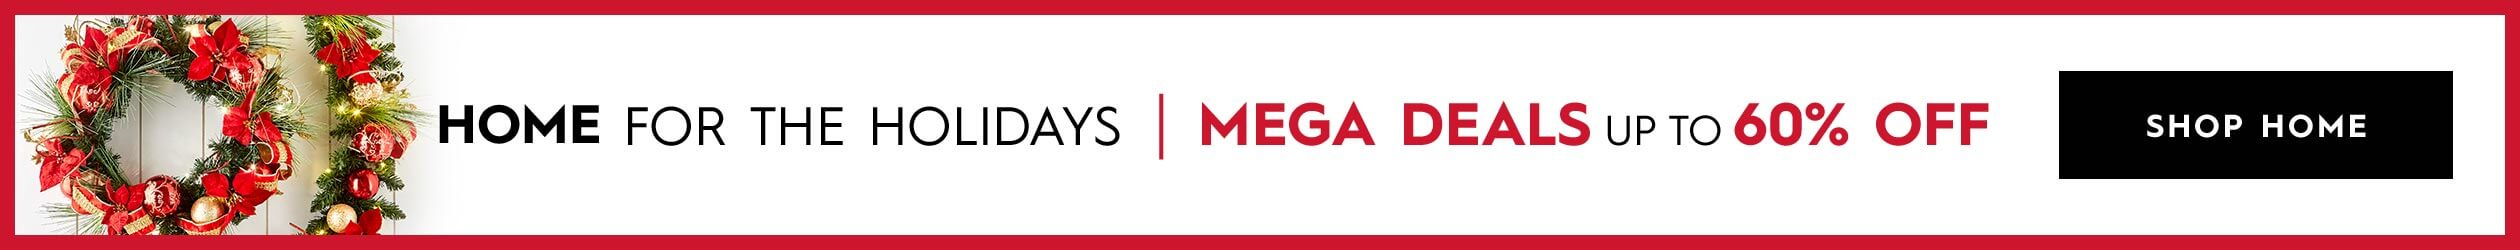 Home for the Holidays | Mega Deals up to 60% off | Shop Home